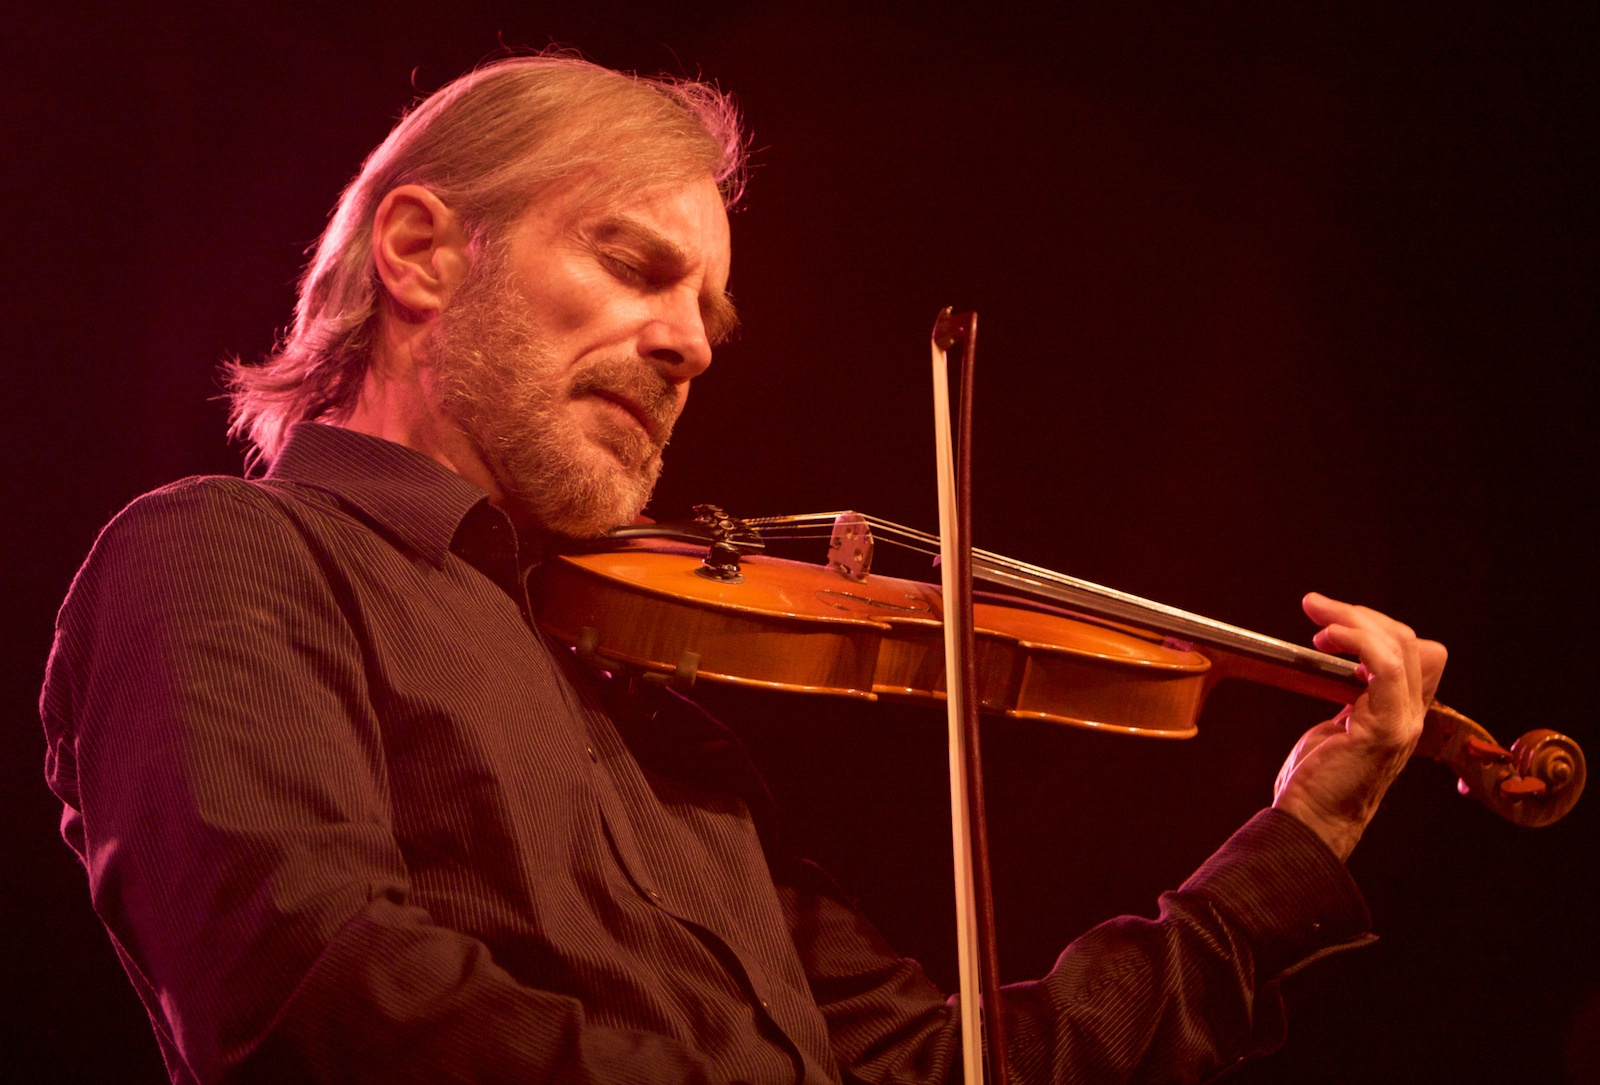 Jean-Luc Ponty, master of the jazz/fusion violin, has performed with artists from Frank Zappa to Béla Fleck. He brings his touring band to South Park Amphitheater for a free concert.